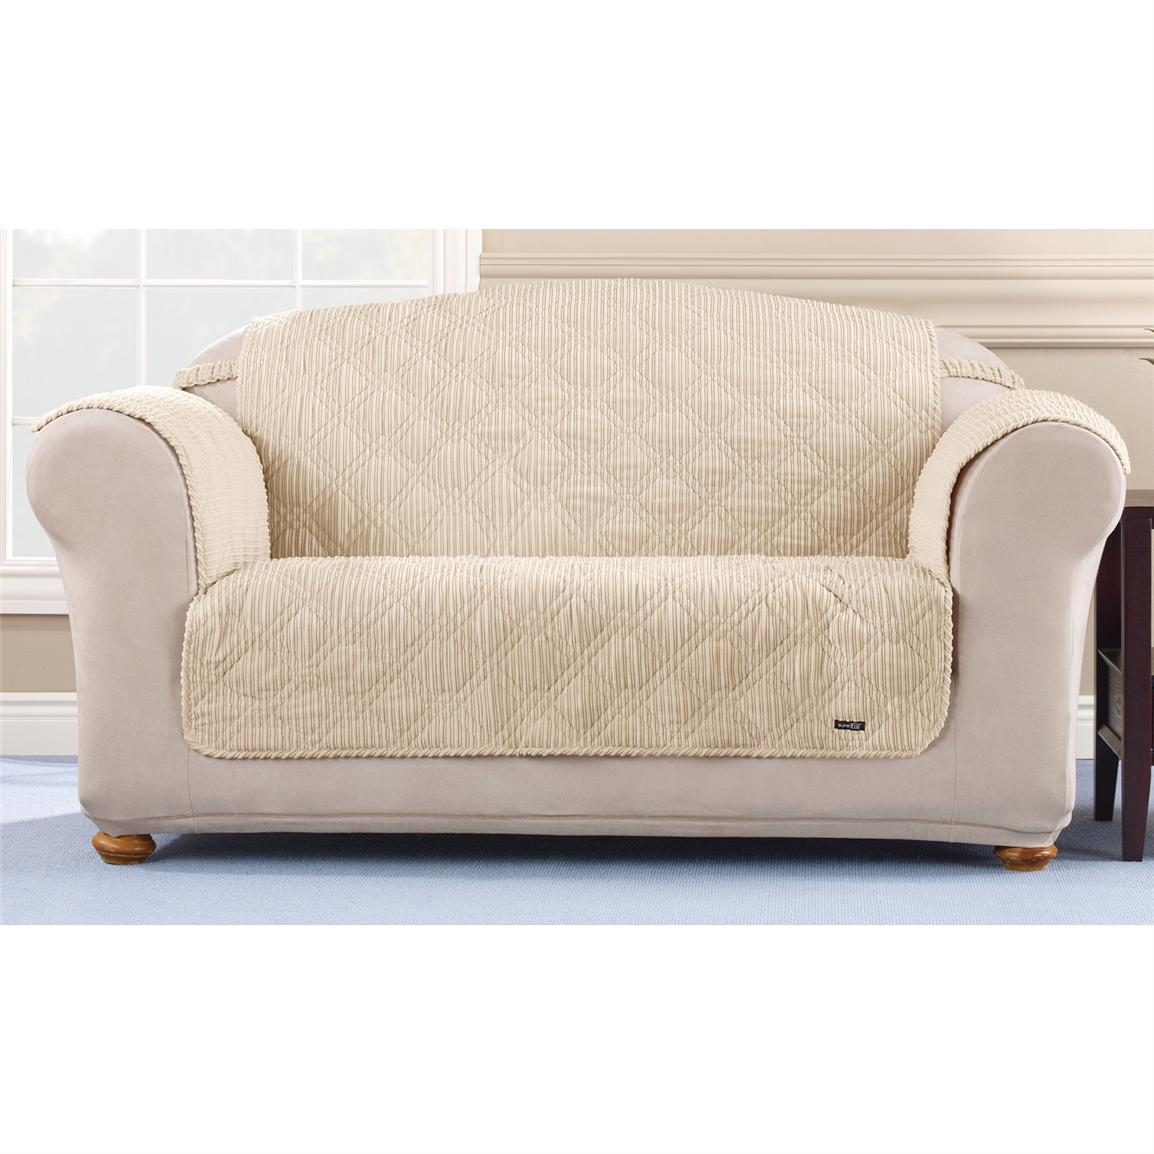 Sure Fit Quilted Corduroy Loveseat Pet Cover 292845 Furniture